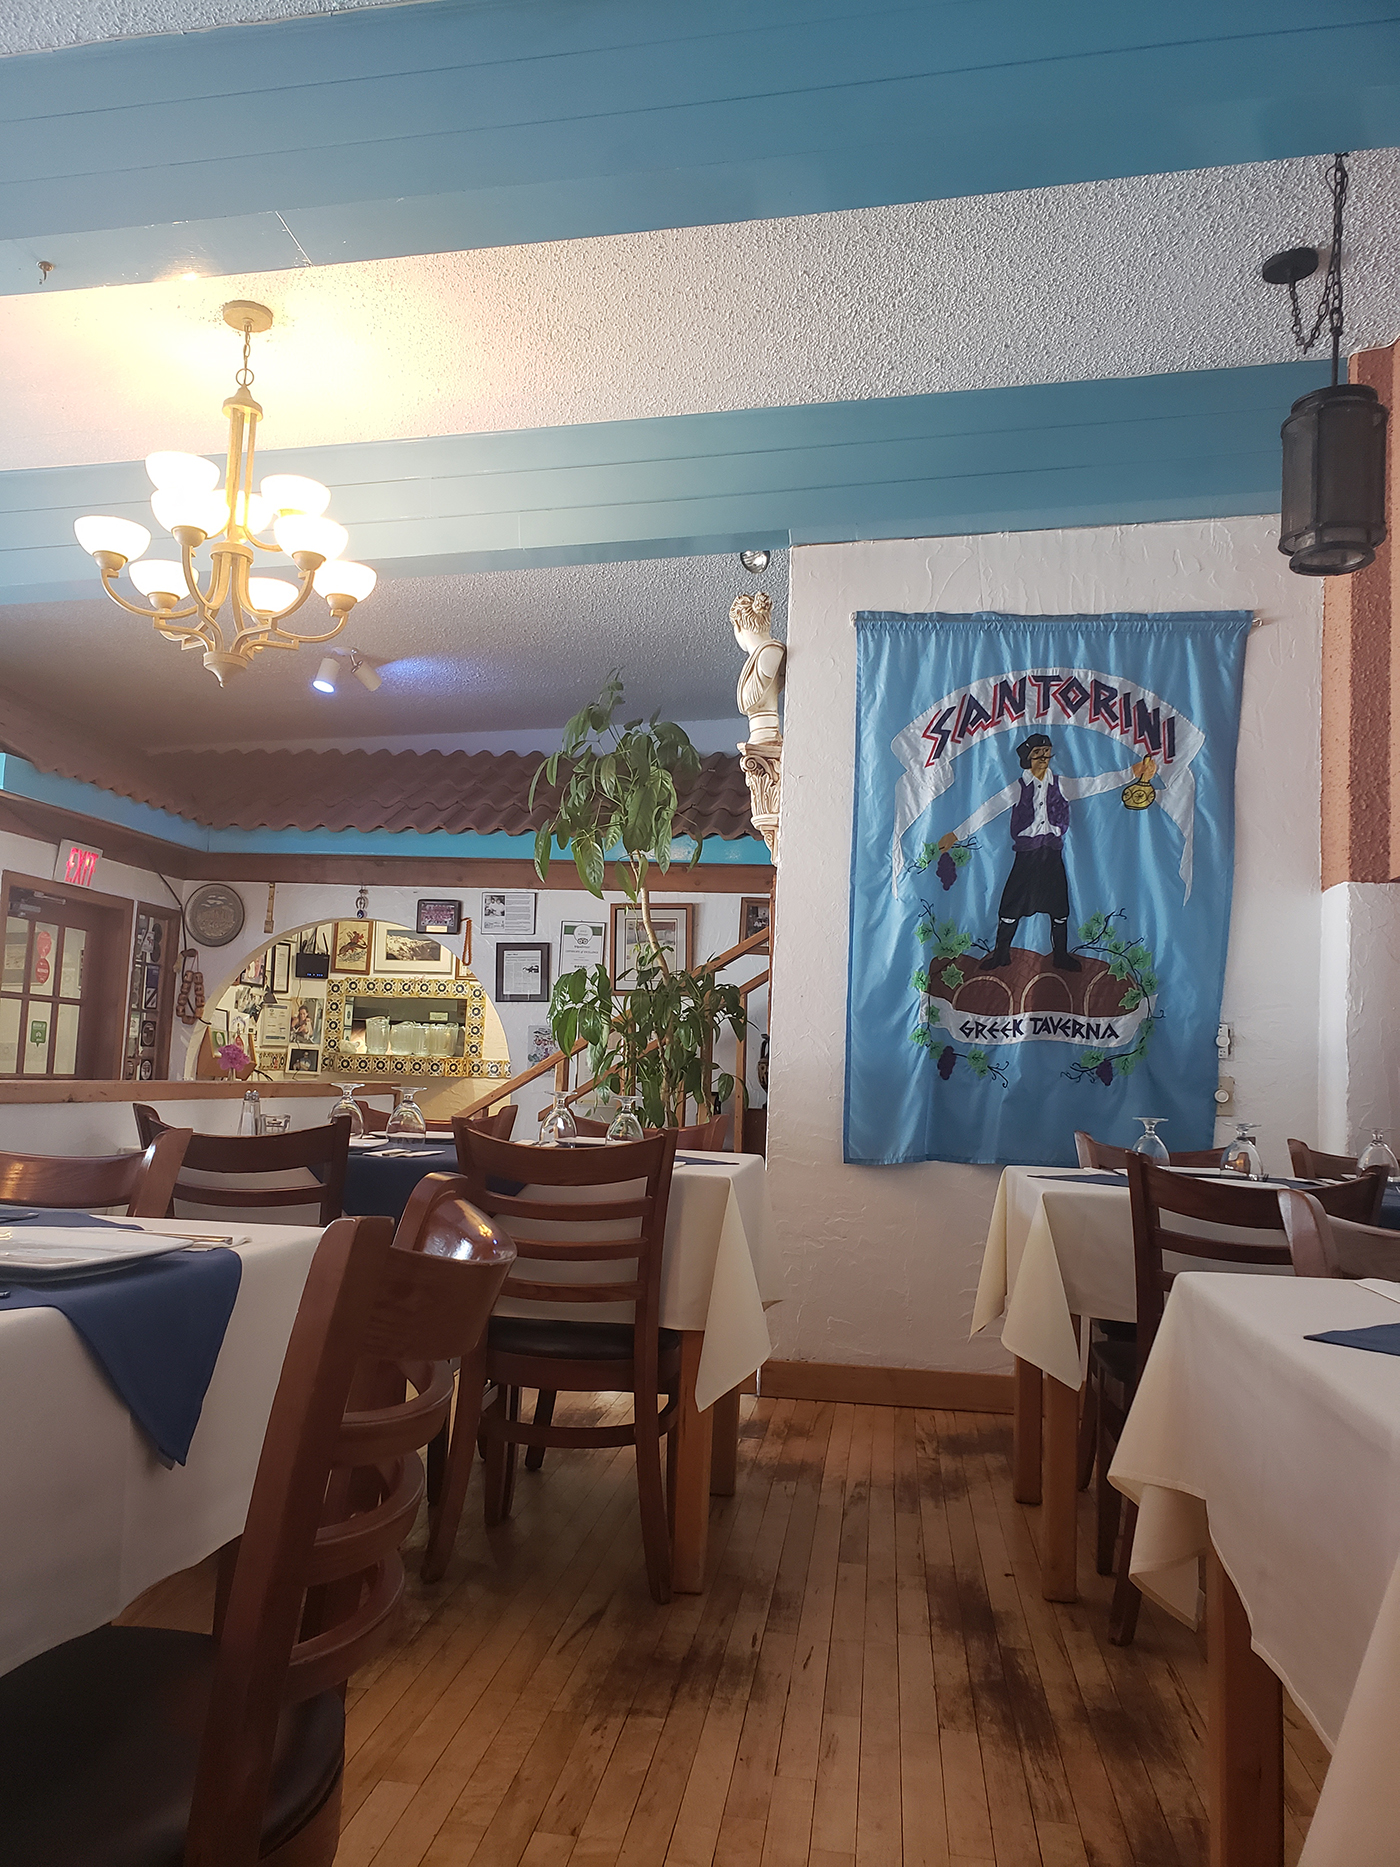 Santorini Greek Taverna Restaurant Review